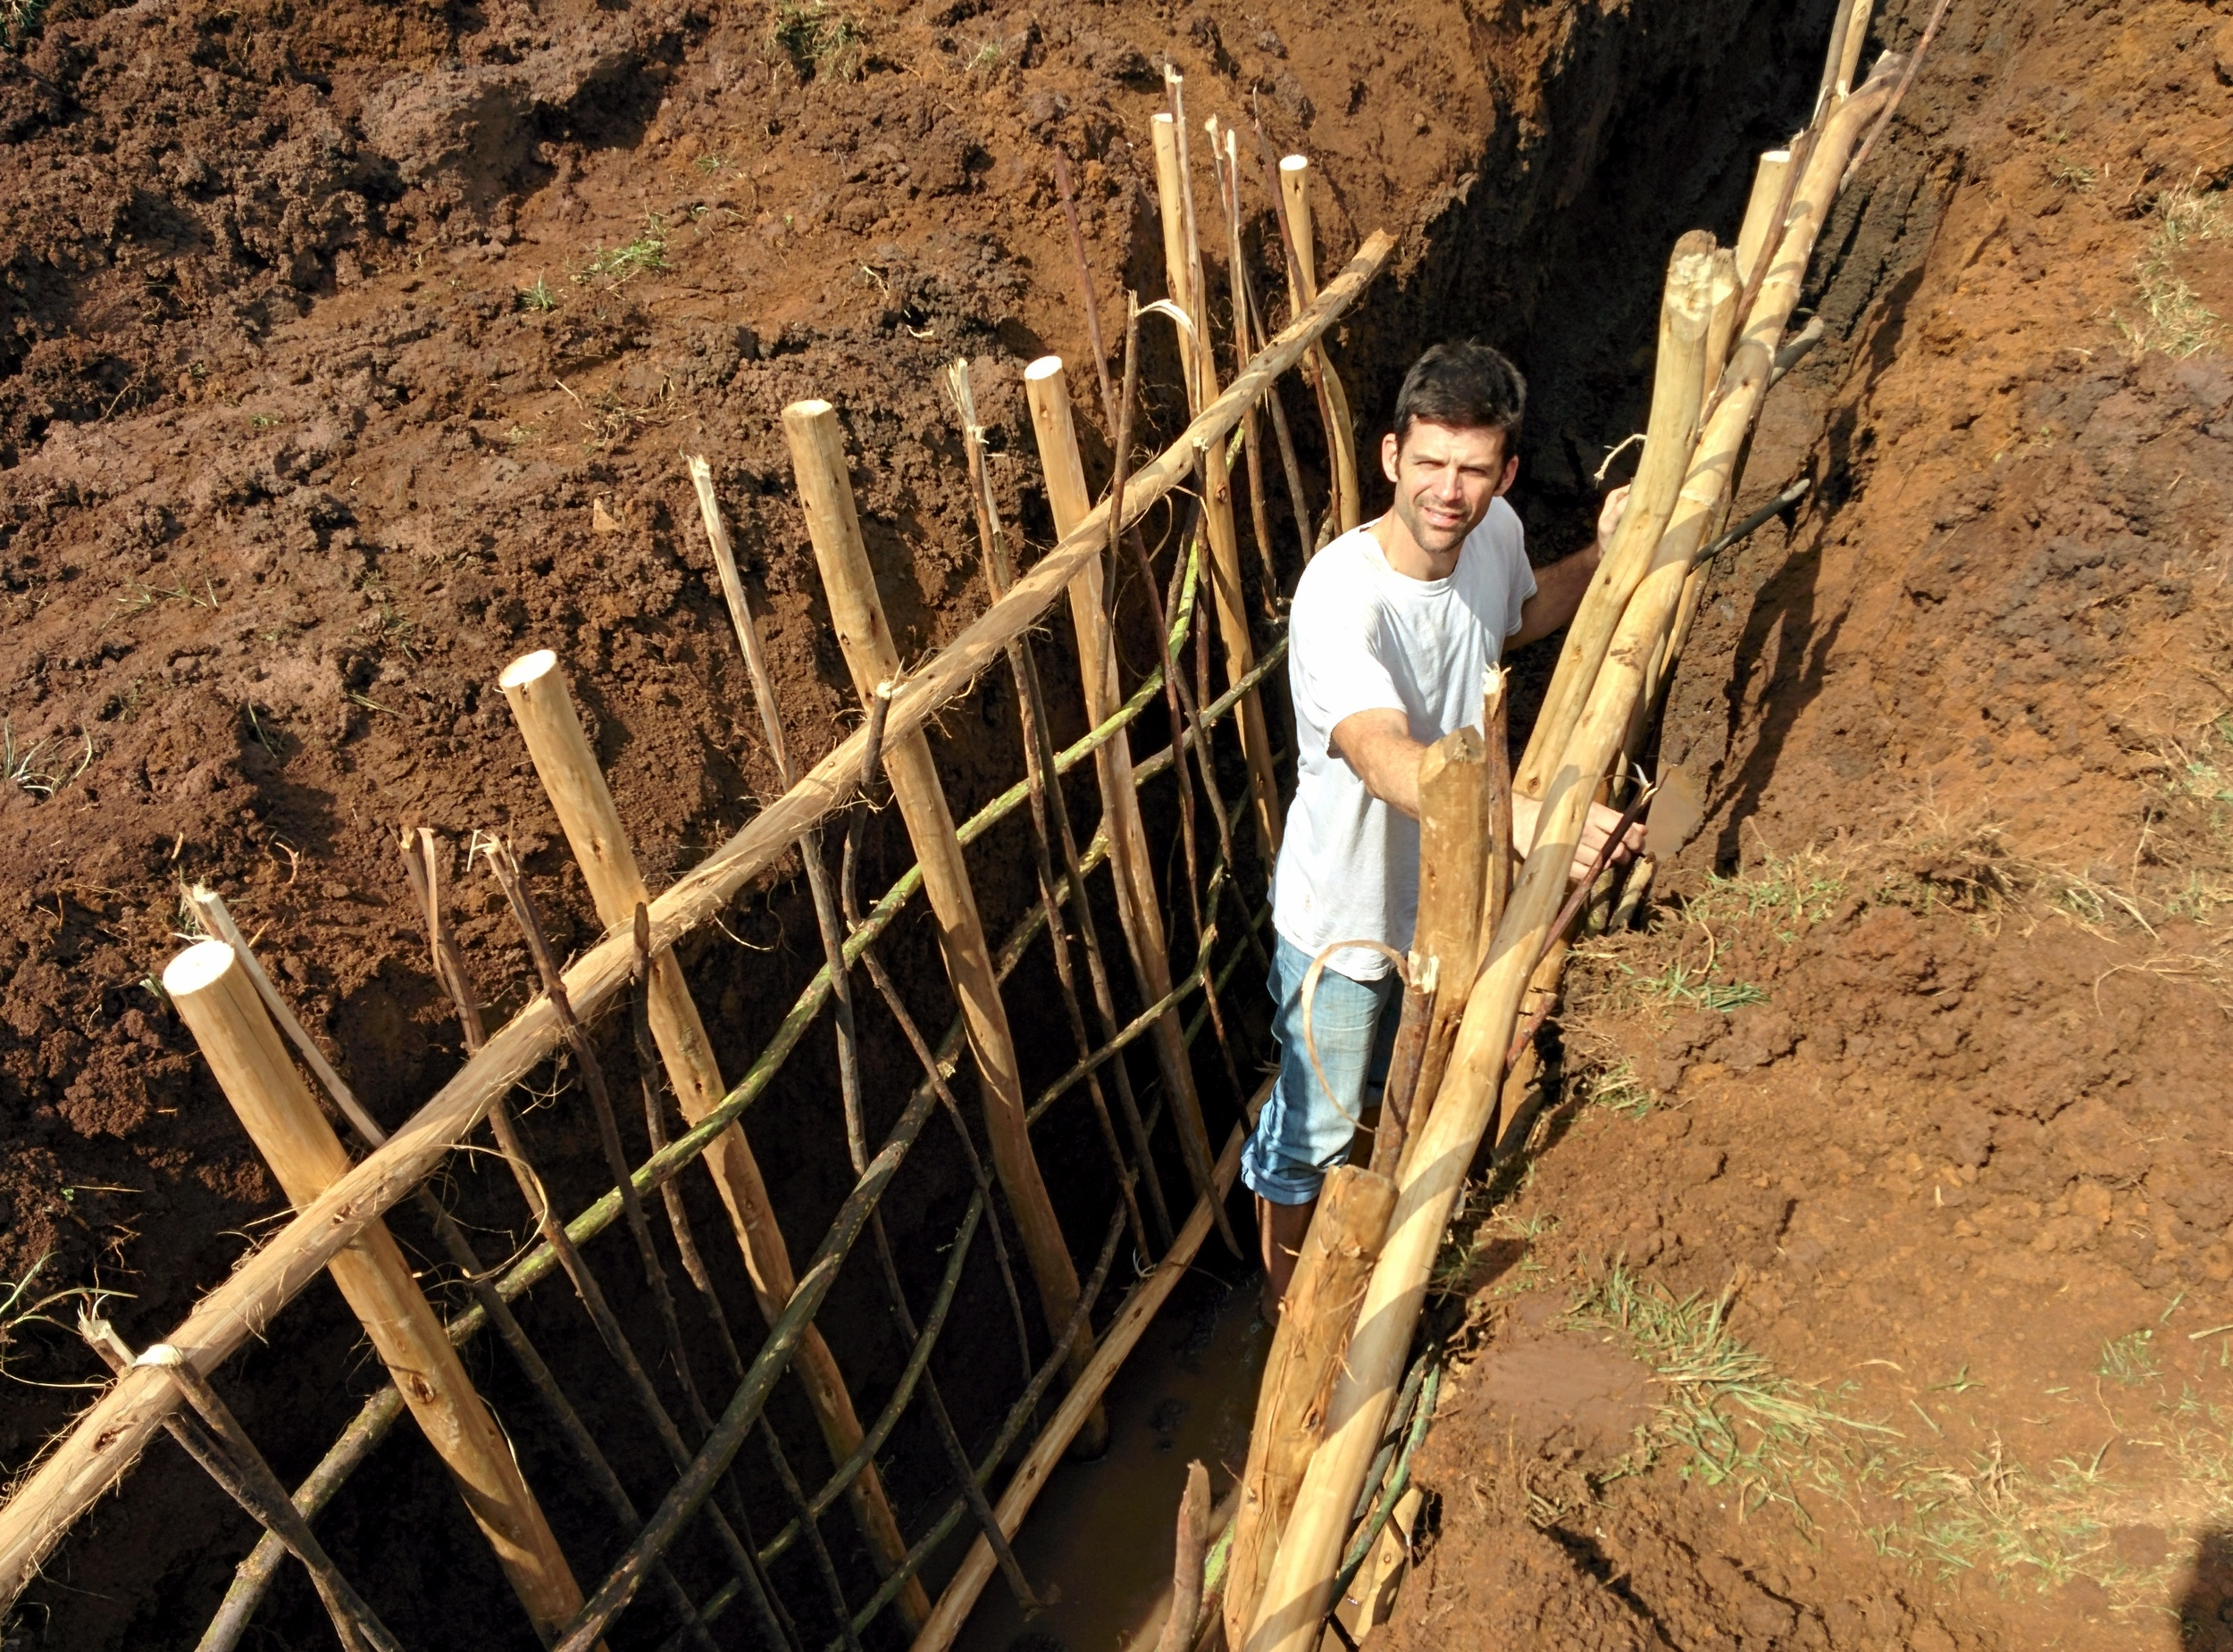 Josh Leinbach leading in the construction of a fresh water well.